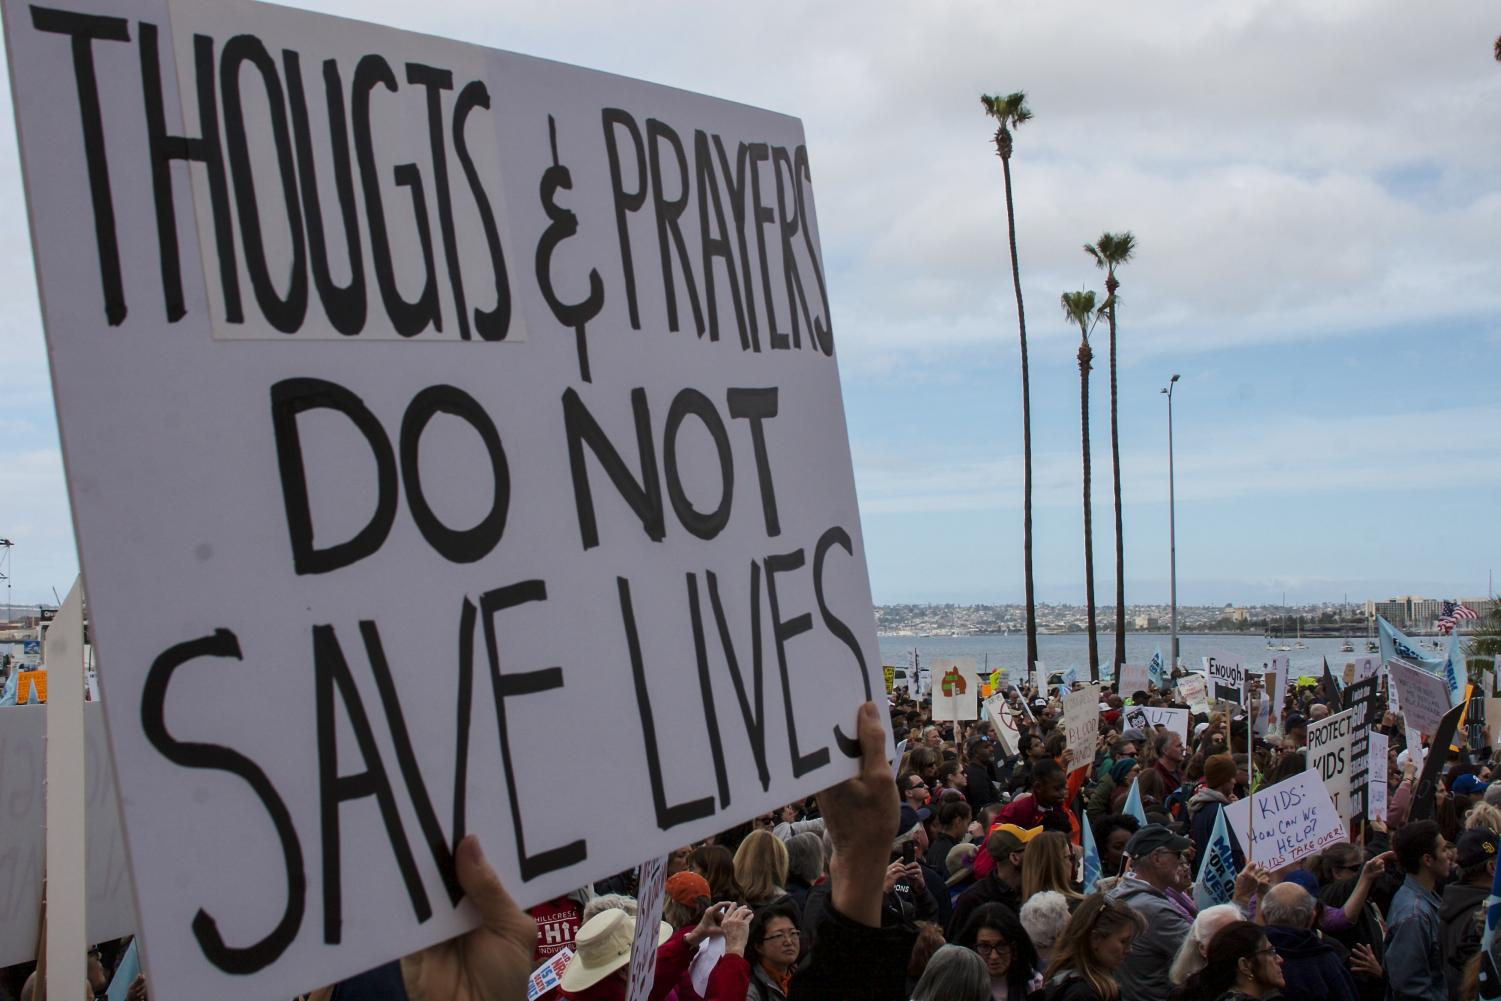 Thousands+attended+the+March+for+Our+Lives+San+Diego+which+began+at+Waterfront+Park+in+downtown+to+demand+legislation+to+protect+students+from+gun+violence.+By+Shaylyn+Martos%2F+City+Times